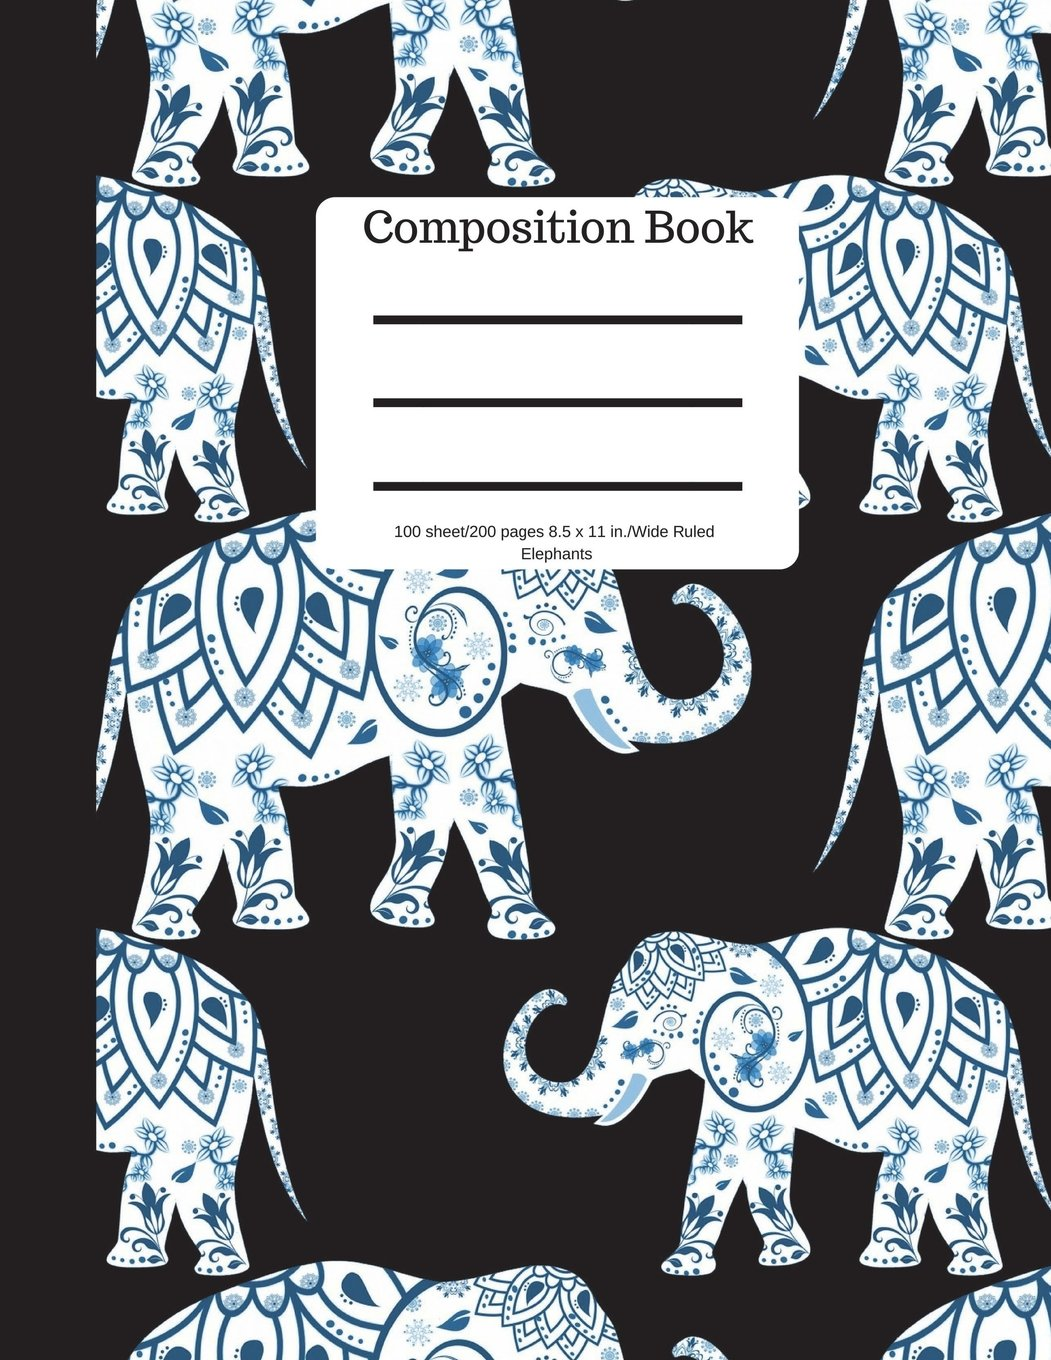 Composition Book 100 sheet/200 pages 8.5 x 11 in.-Wide Ruled-Elephants: Notebook for School Kids  Student Journal  Writing Composition Book  Soft Cover pdf epub